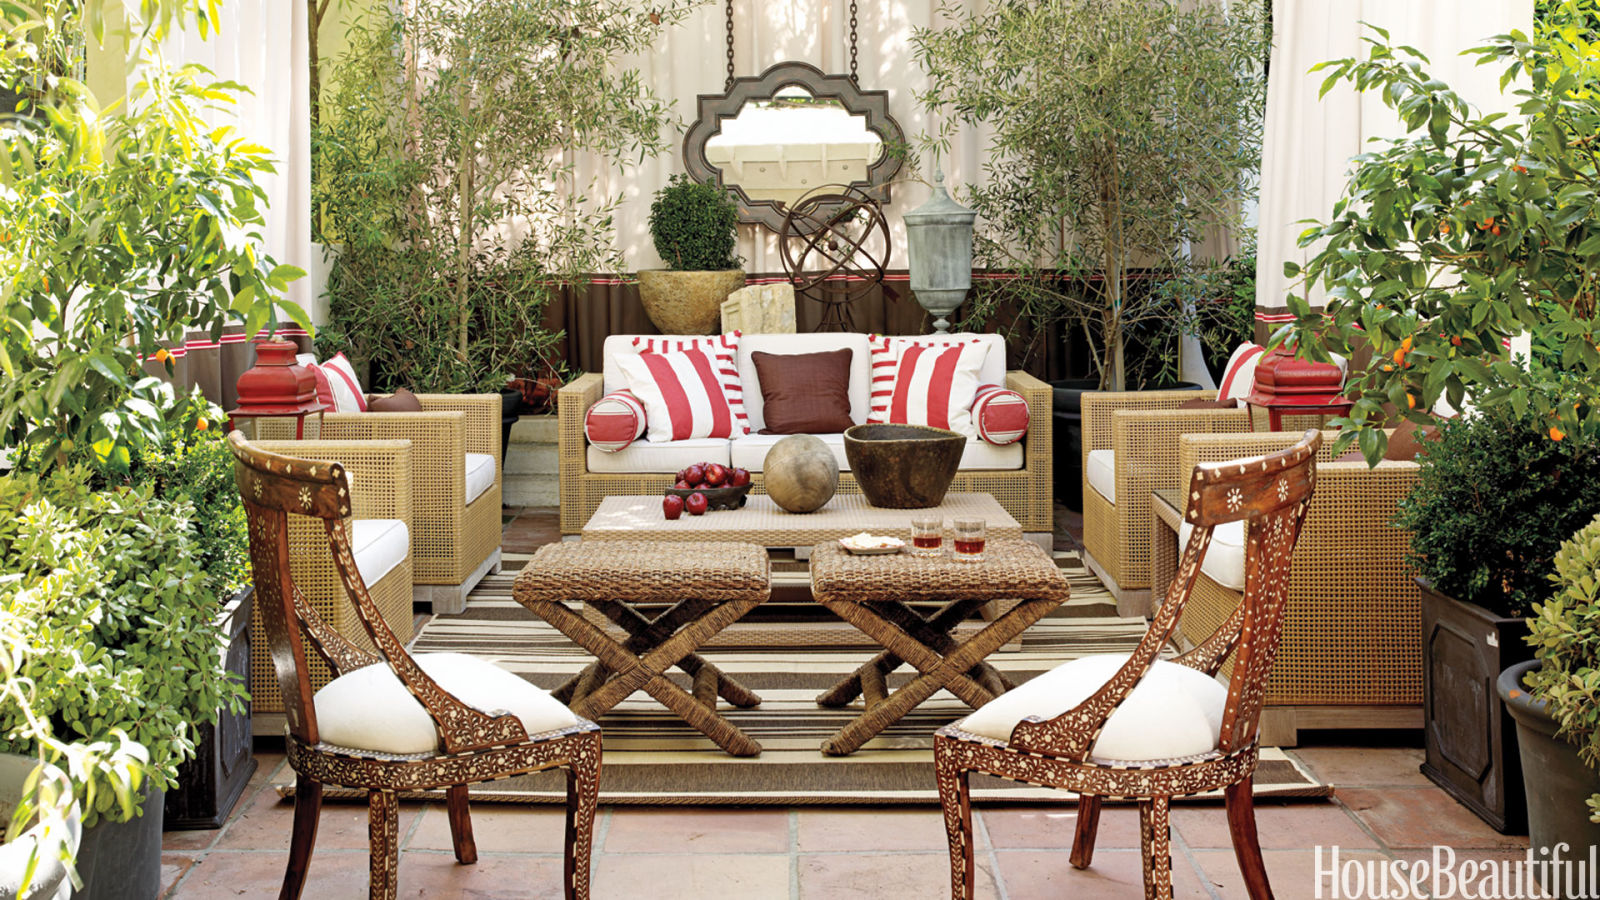 Design Ideas Beautify Your Outdoor Space With These: 10 Outdoor Decorating Ideas